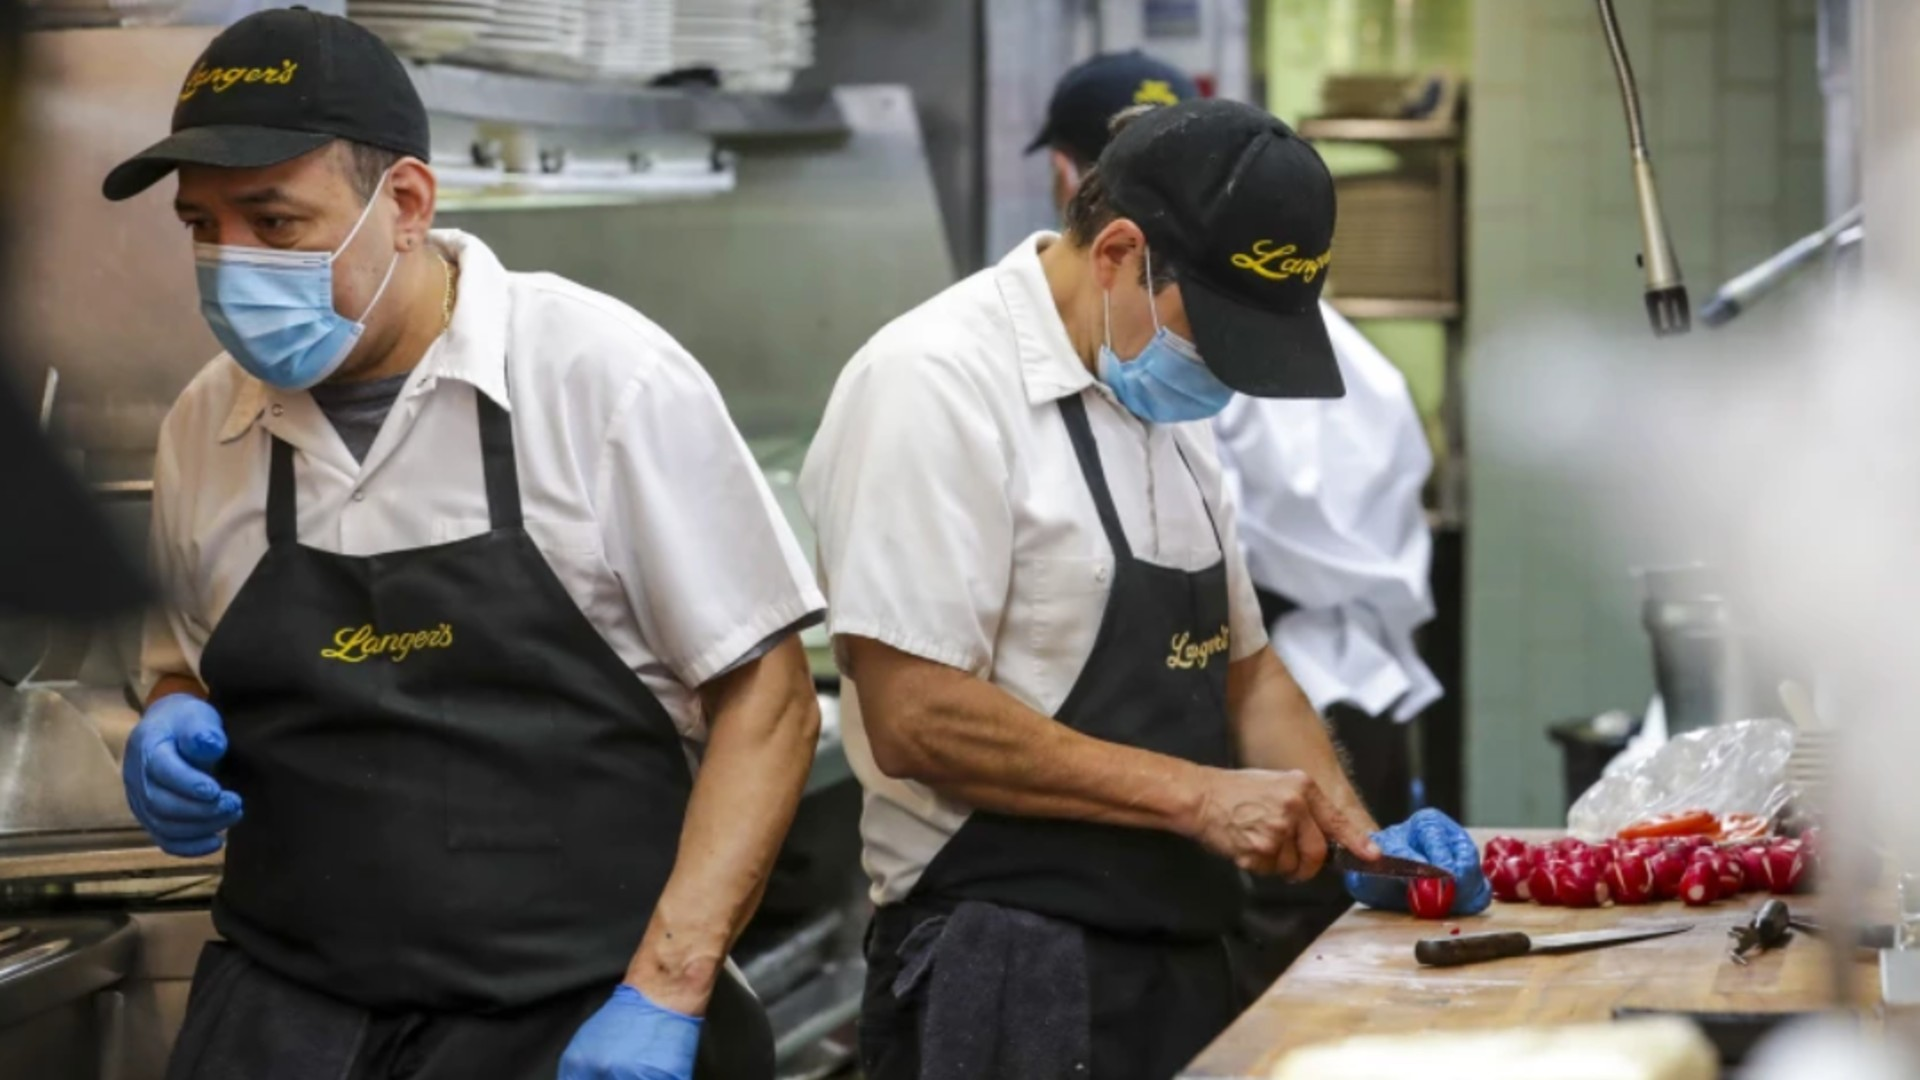 For the first time in over a year, Langer's Delicatessen-Restaurant in L.A. preps food for in-person dining on June 15, 2021. (Irfan Khan/Los Angeles Times)